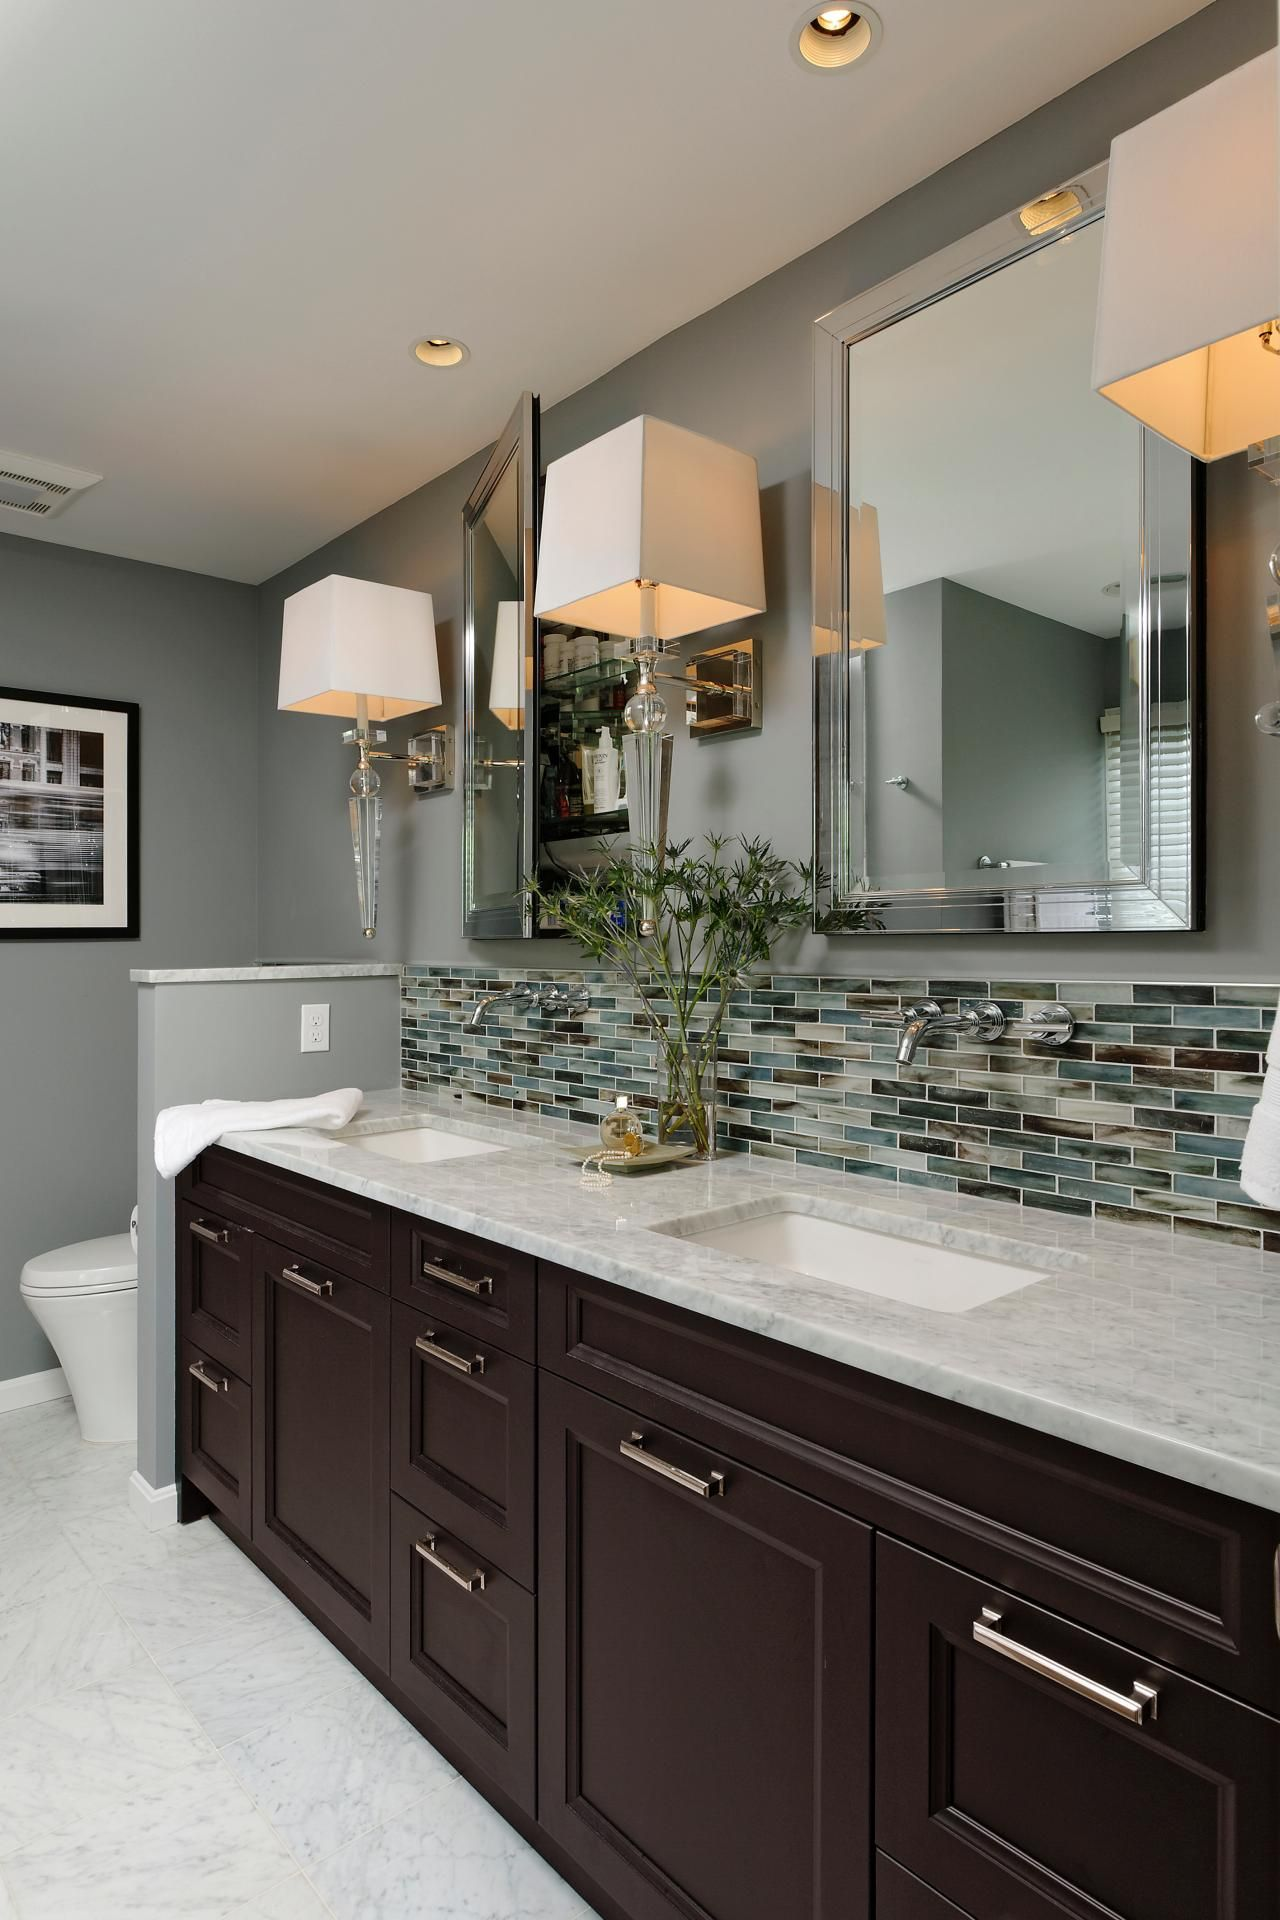 Bathroom ideas - This Gray Contemporary Bathroom Features A Double-vanity Design